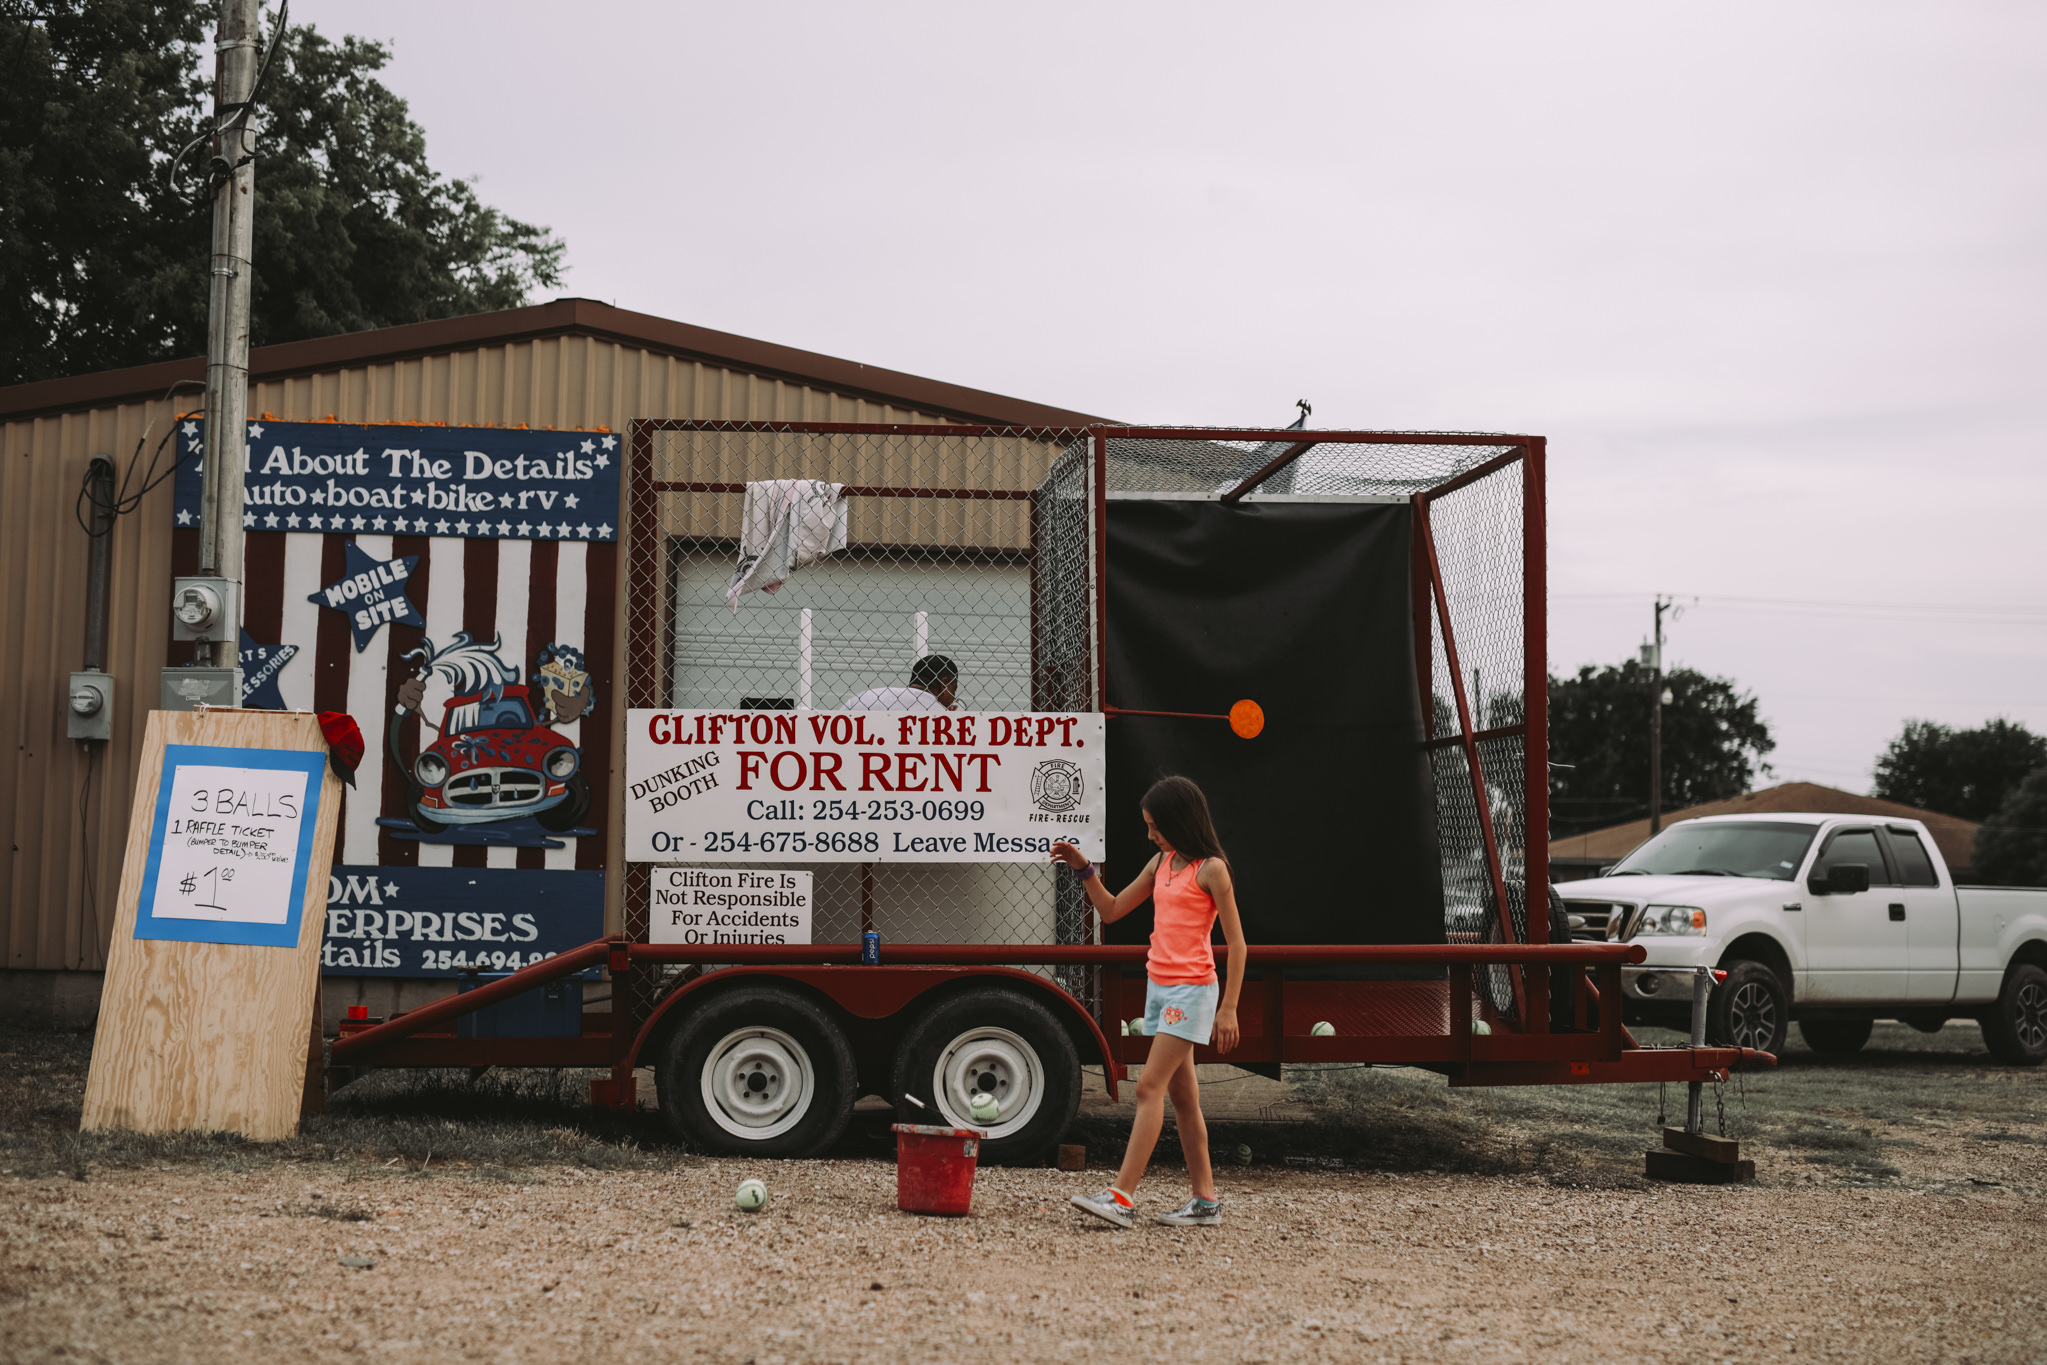 Memorial Day Concert | Clifton VFD Dunk Booth |Whitney, TX